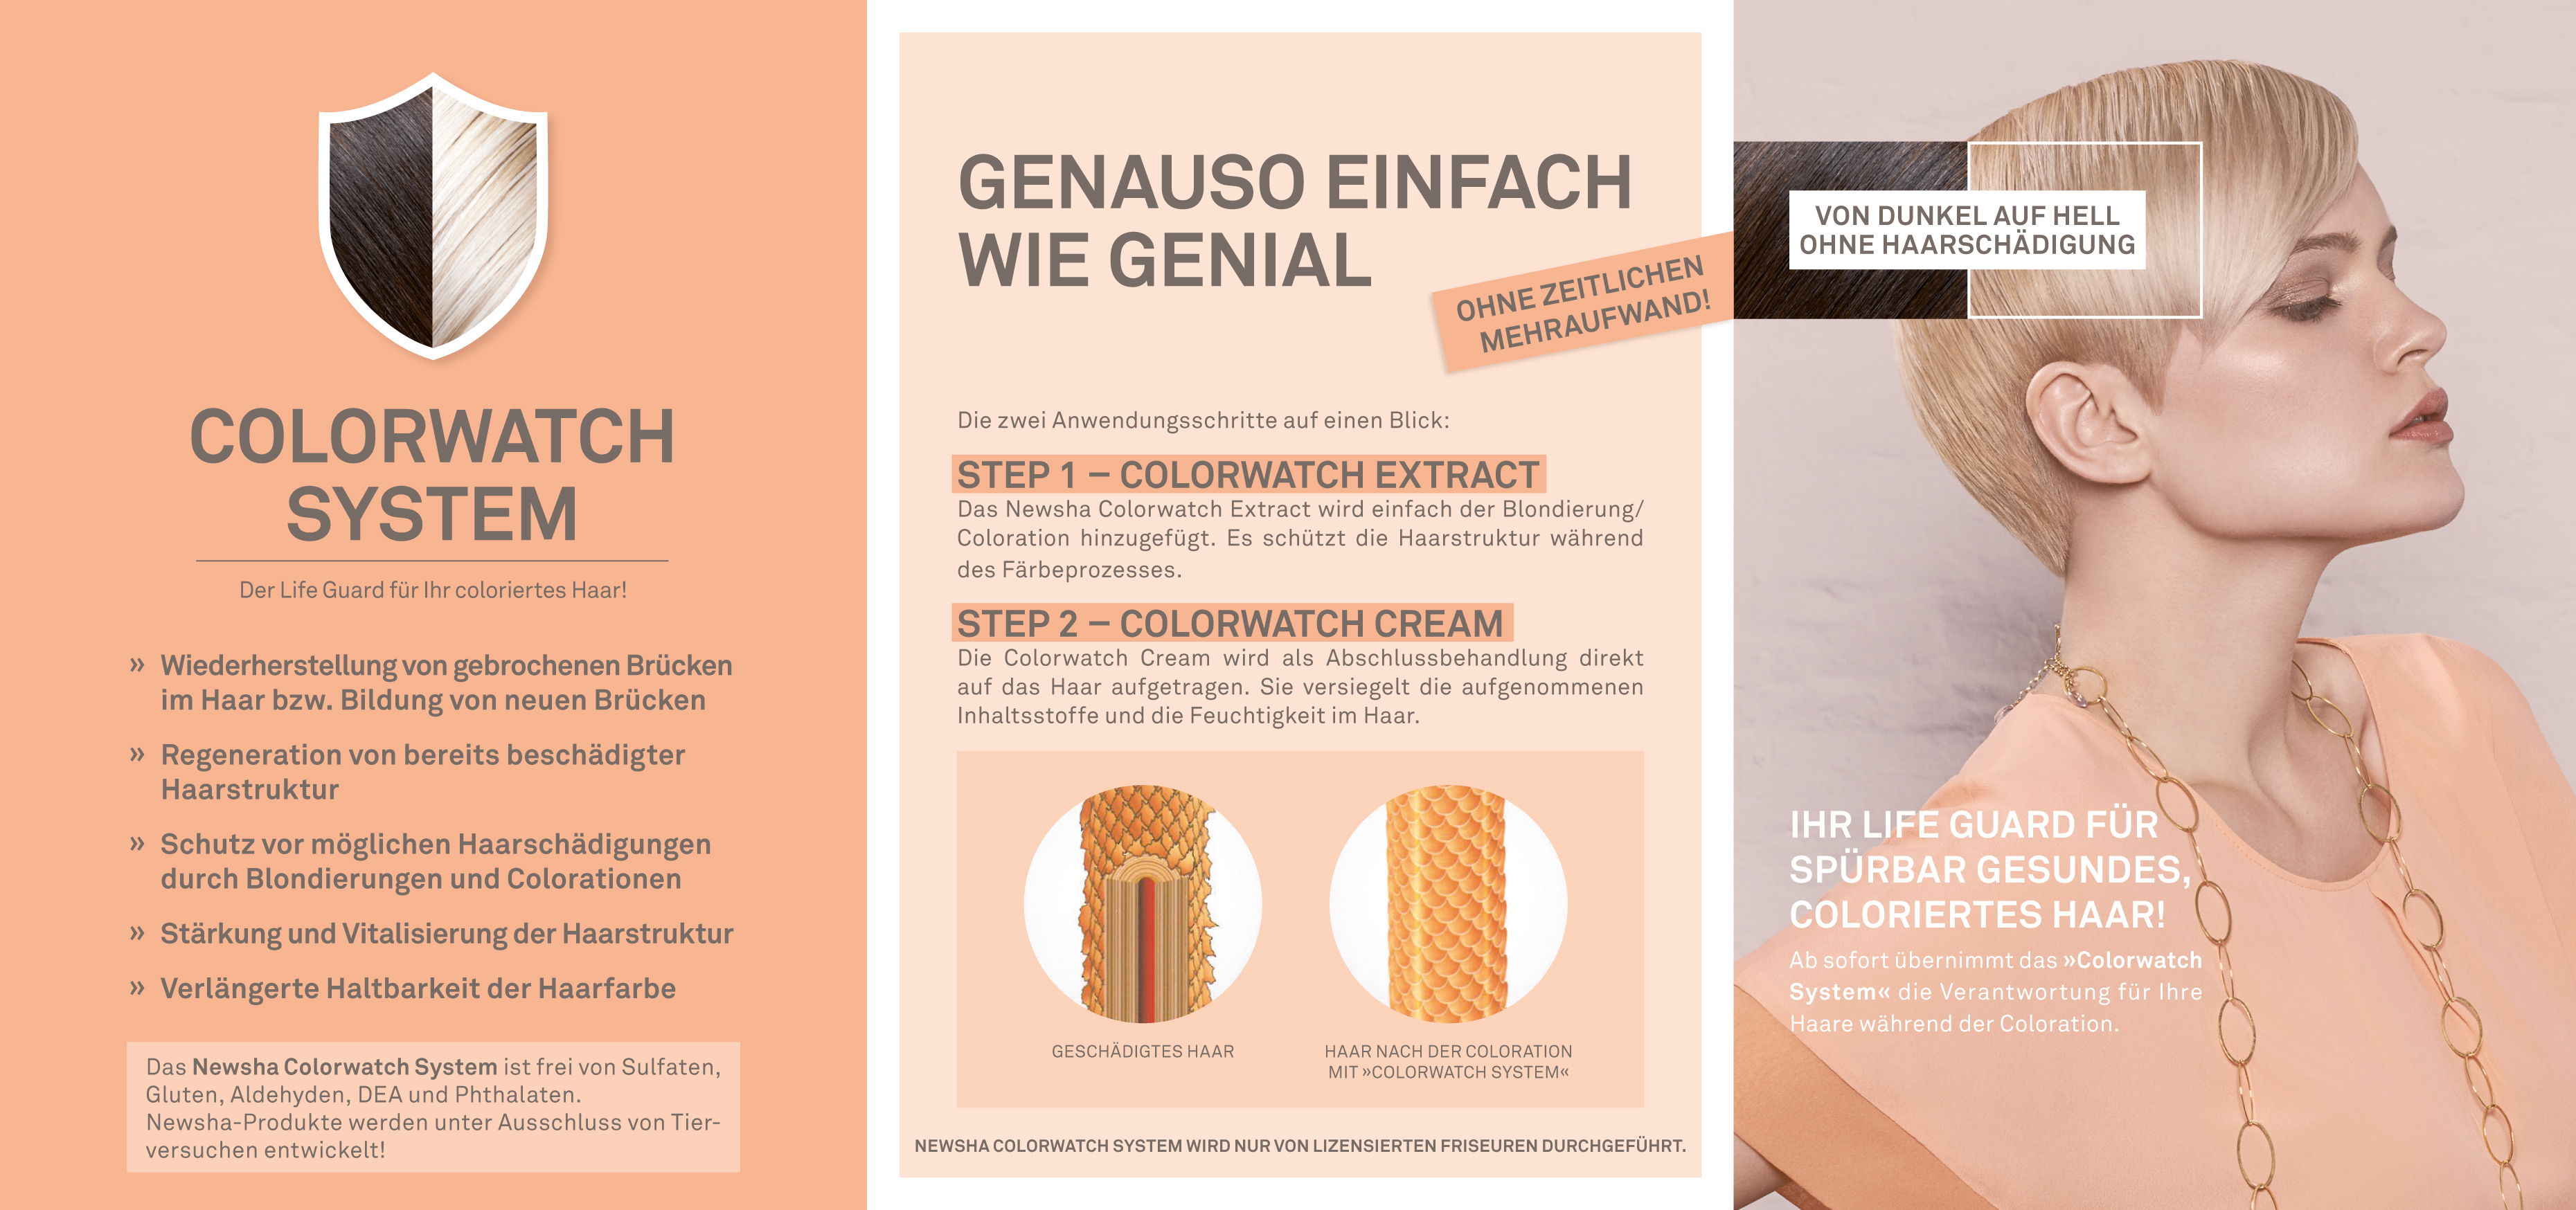 NEWSHA_Colorwatch-System-Endverbraucher-Neu-050515.indd